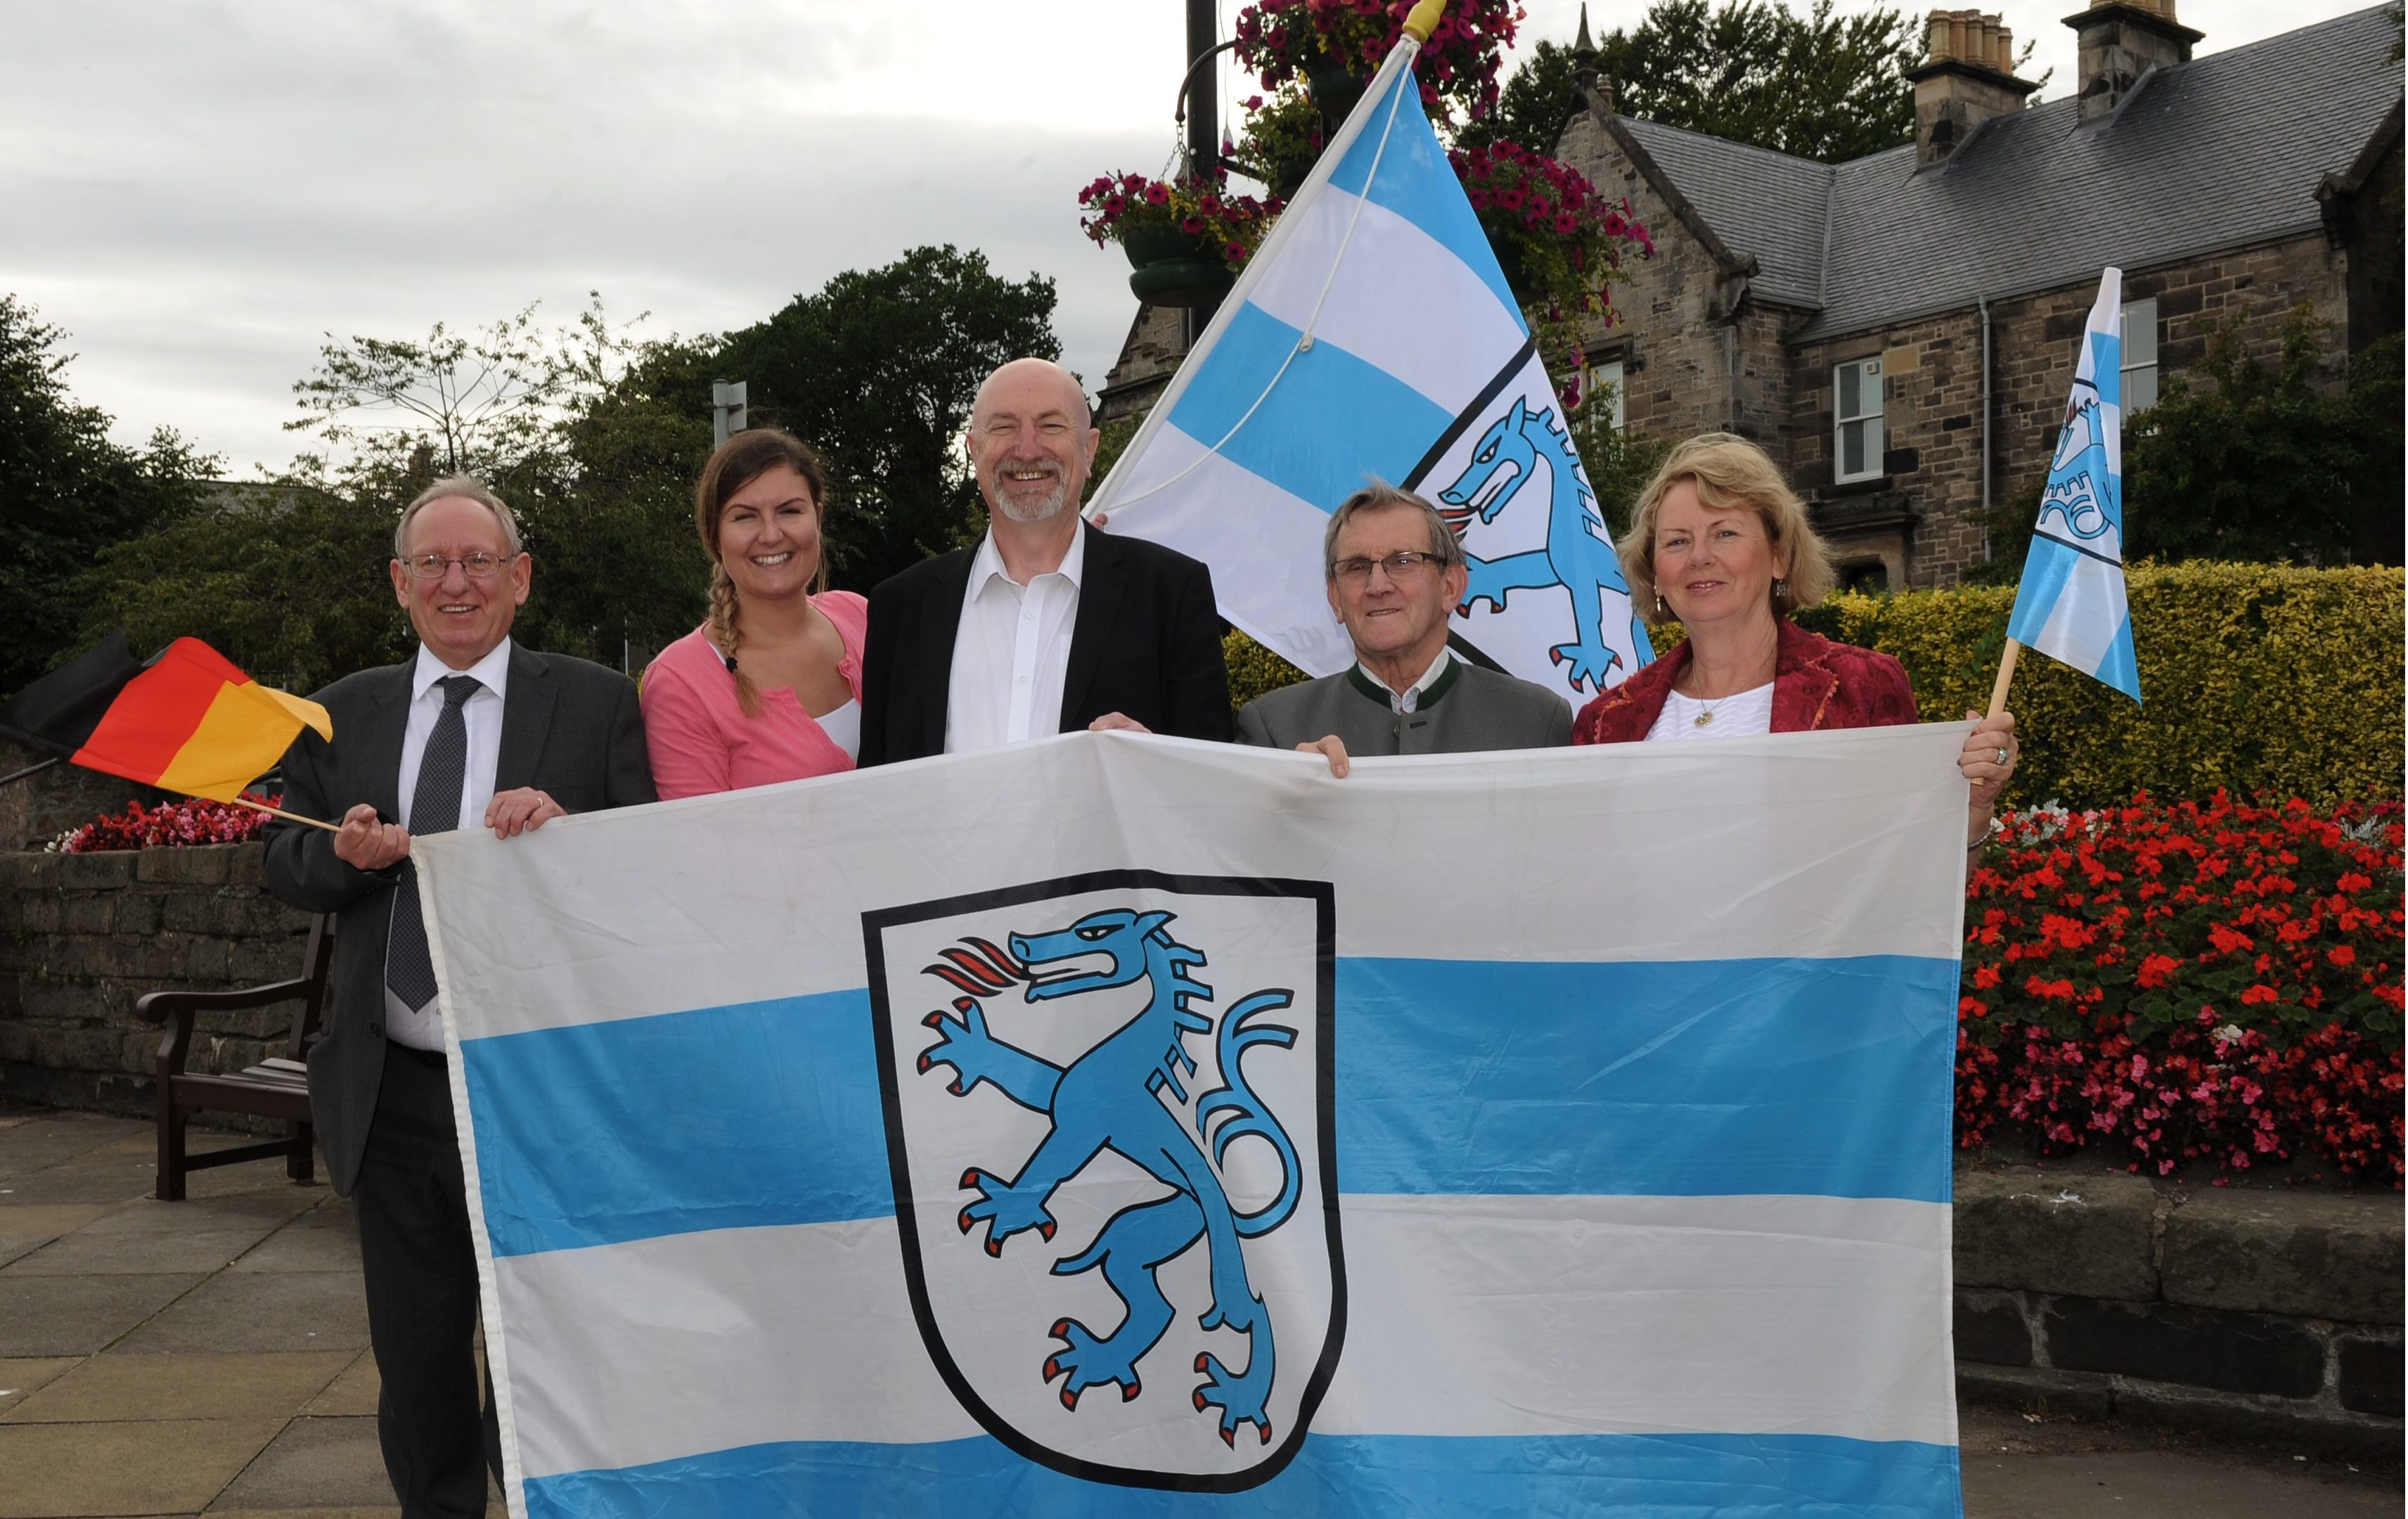 Robert Main from the Kirkcaldy Ingolstadt Association, left, with Linda Pearce, Cllr Neil crooks, Jim Cooper and Joey Cottrell.